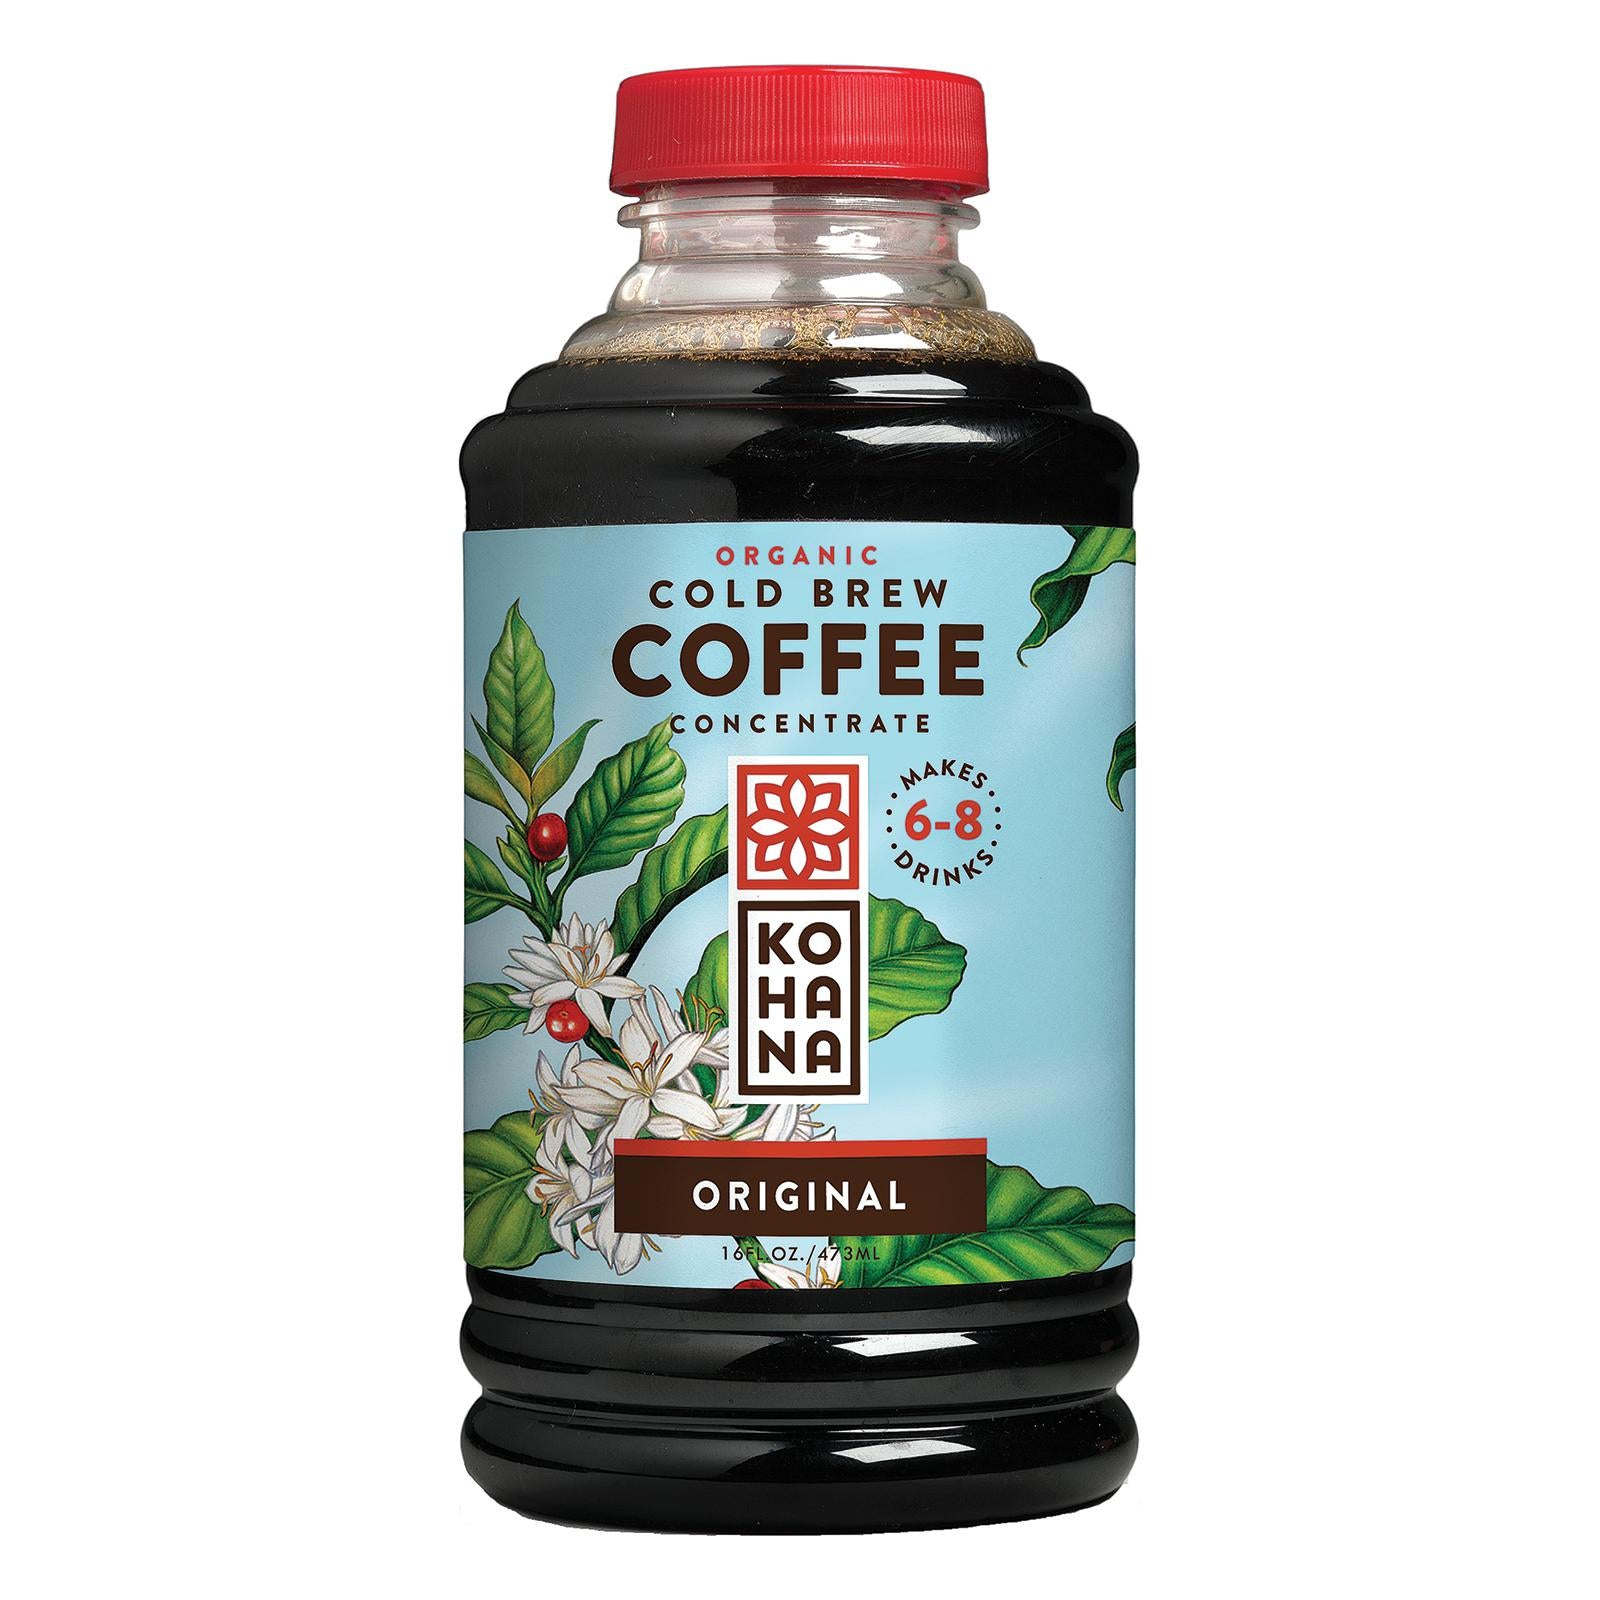 Kohana Organic Cold Brew Coffee Concentrate - Original - Case Of 12 - 16 Fl Oz.